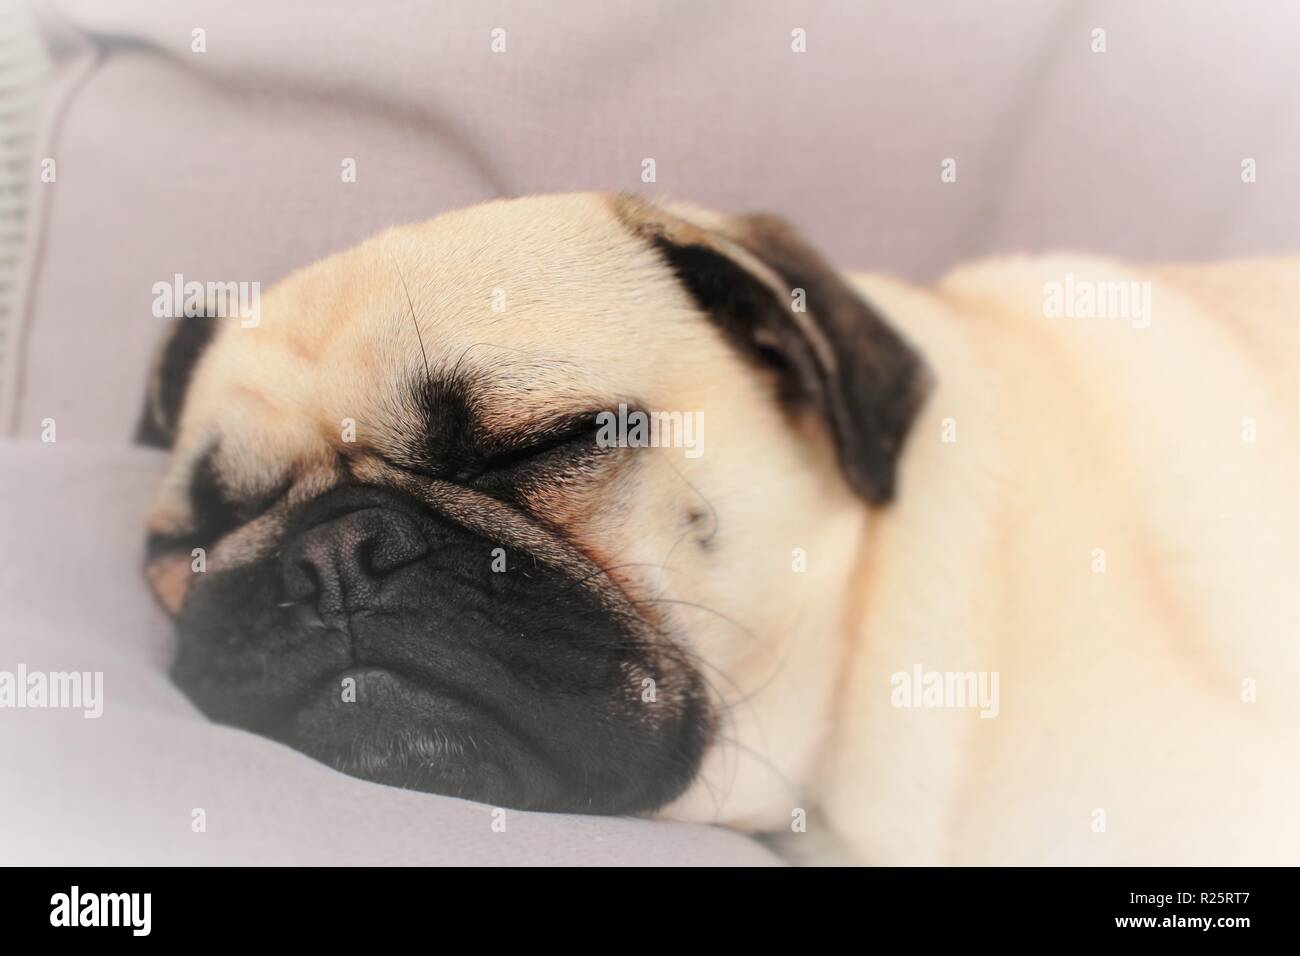 Conceptual photo portraying 'Dreaming',with a one year old, sleeping, male Pug dog used. - Stock Image